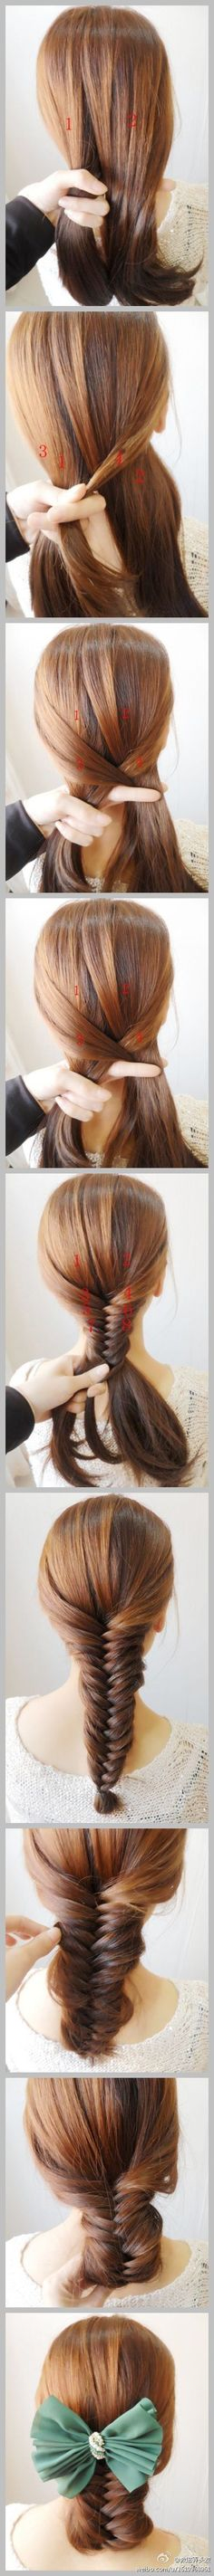 fishbone braid. very well done.